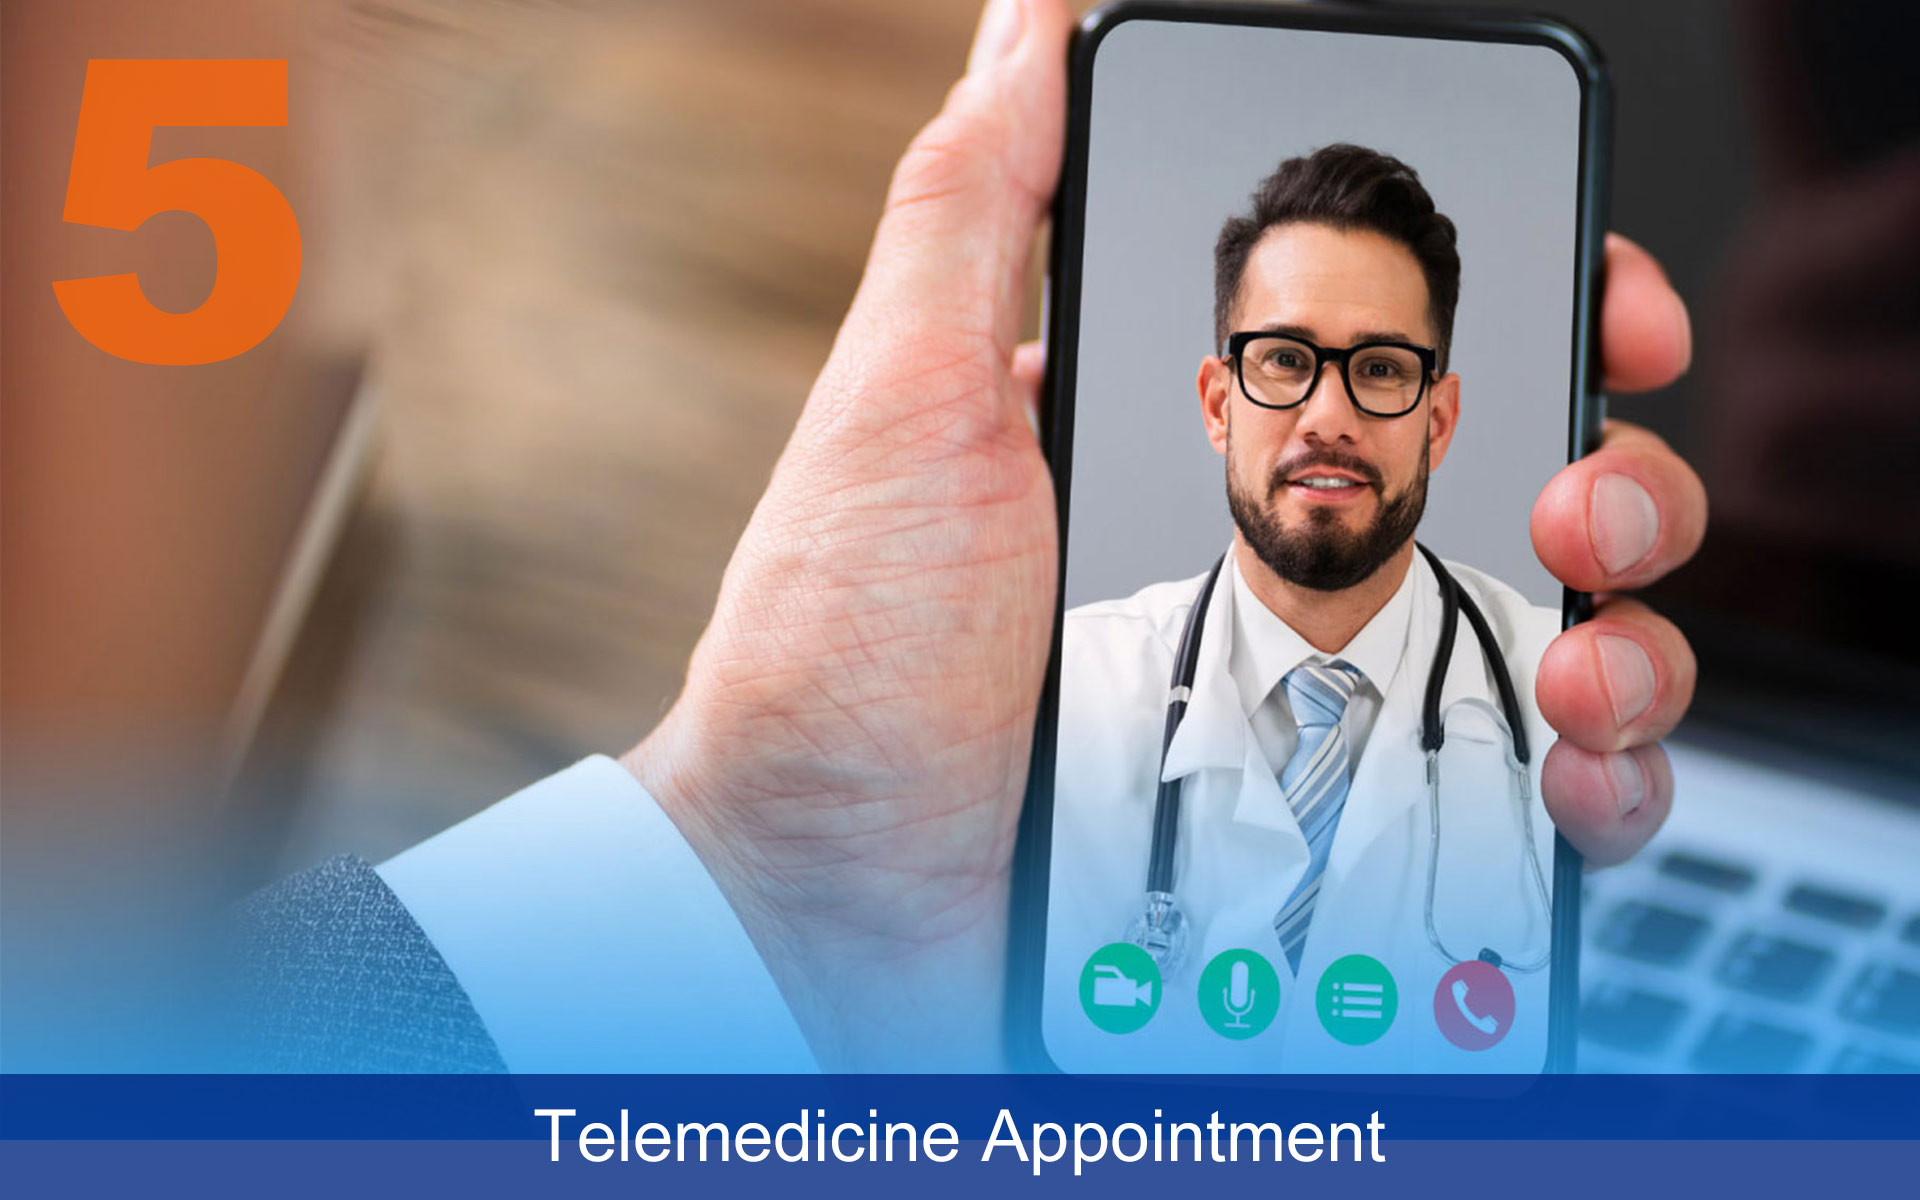 Telemedicine Appointment